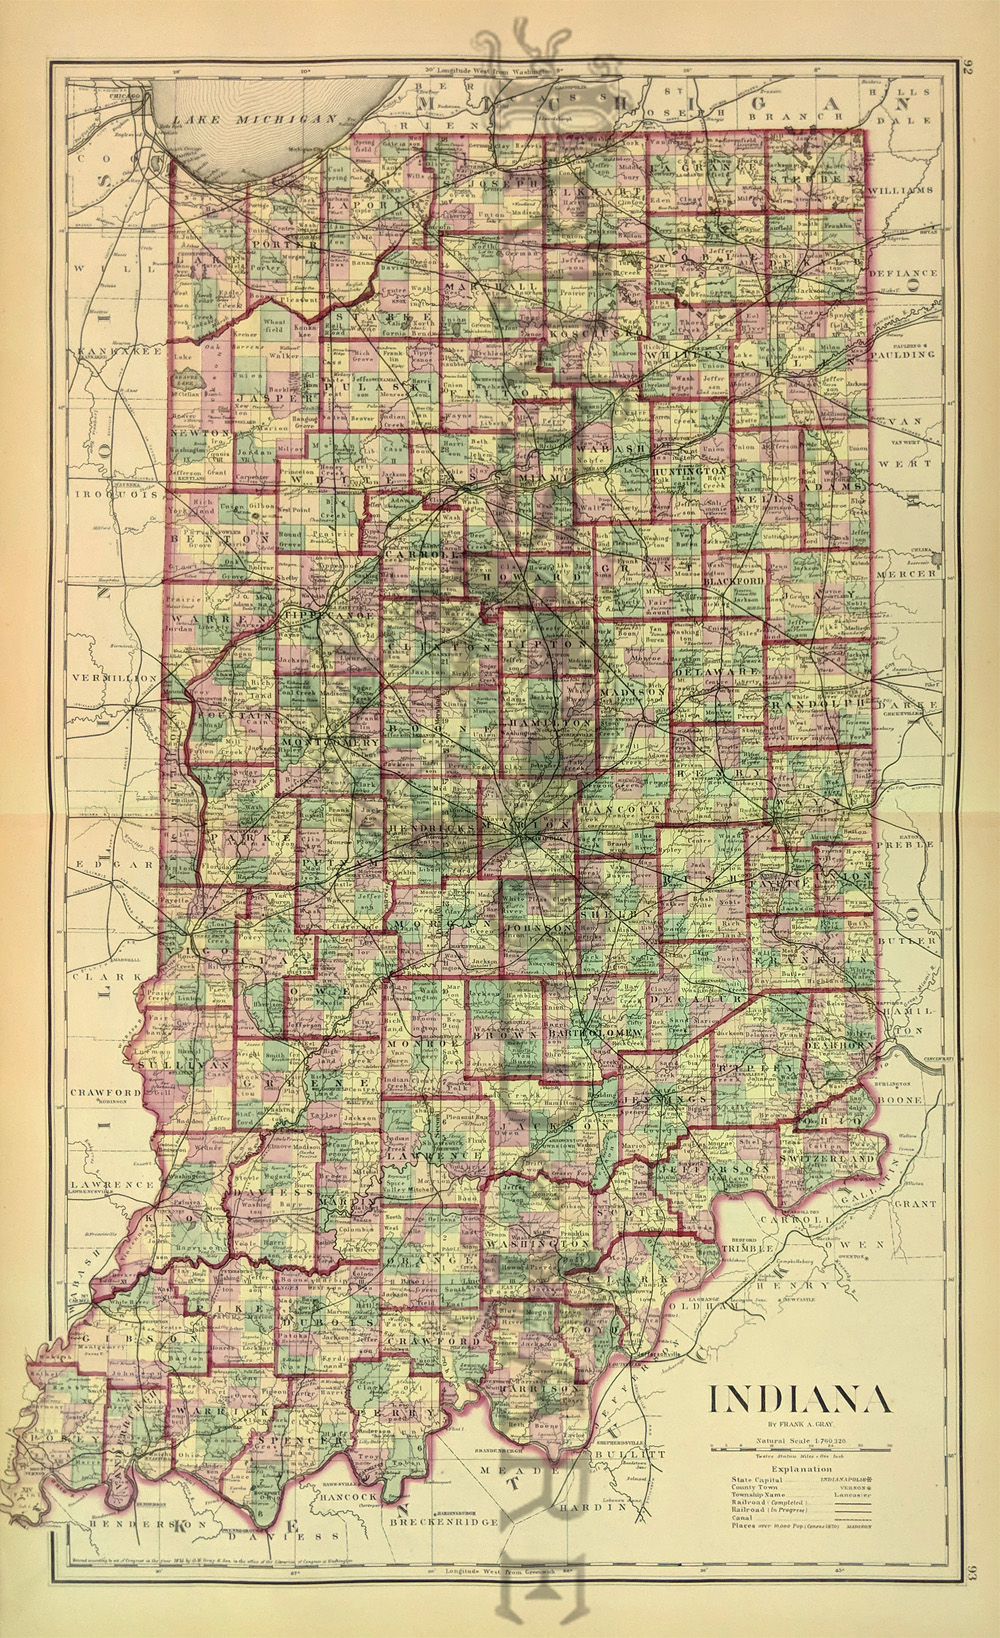 Prints Old & Rare - Indiana - Antique Maps & Prints on shreveport map, fort thomas map, cedartown map, waycross map, hopkinsville map, fairmont map, tell city map, mcpherson map, greencastle map, livonia map, clayton map, bennettsville map, villa rica map, elizabeth map, lafayette map, valparaiso map, oolitic map, scottsburg in map, lake charles map, london map,